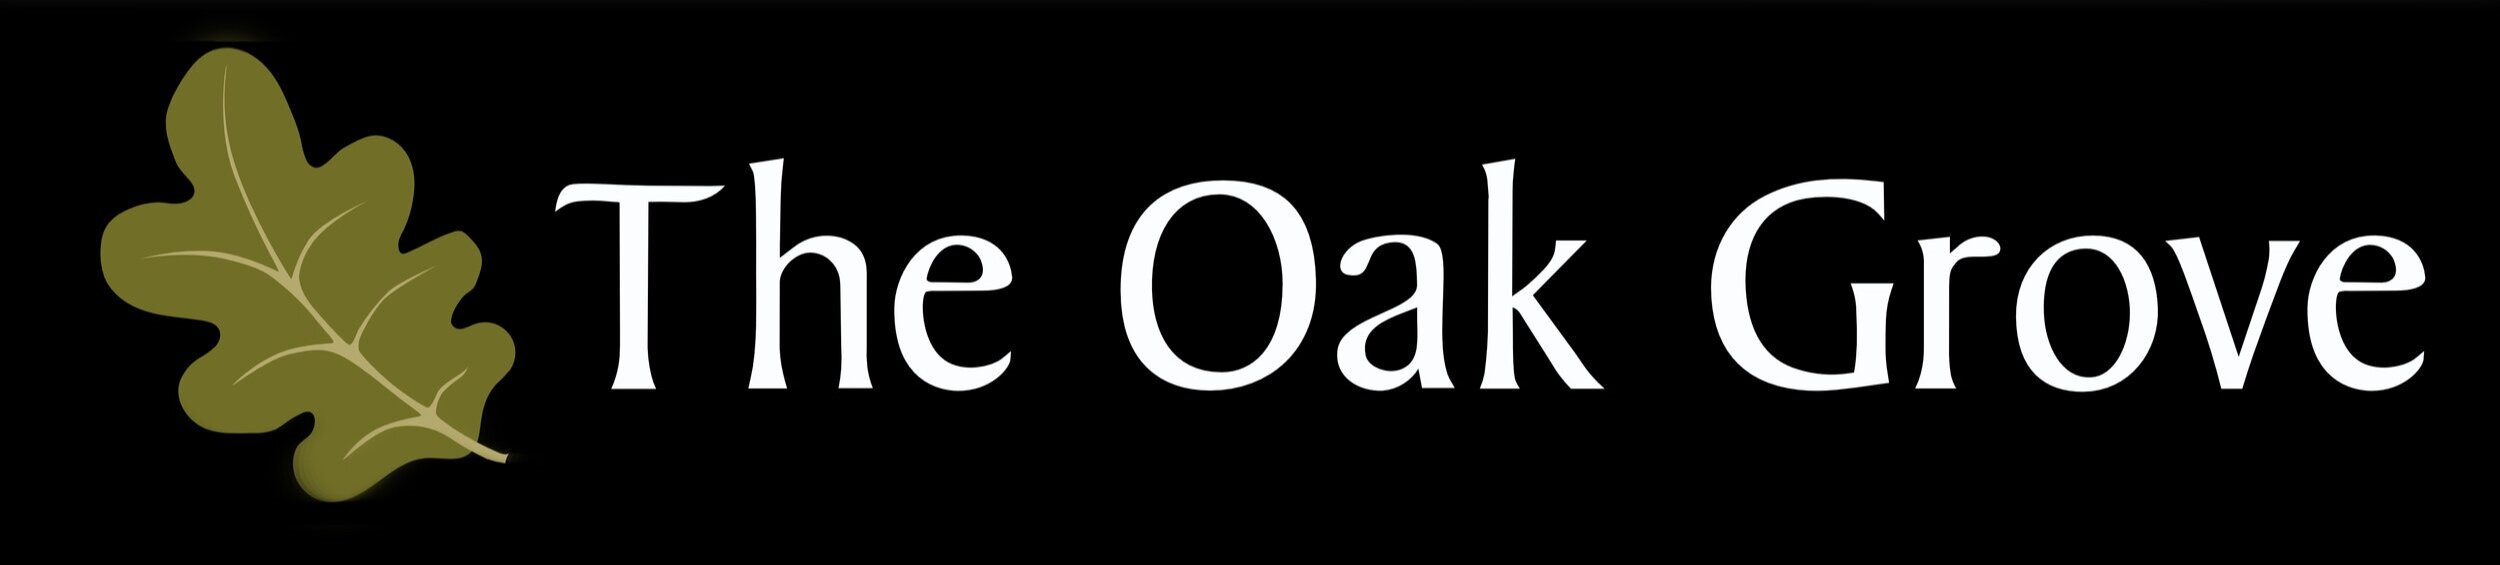 The+Oak+Grove+Recommended+Wedding+Supplier